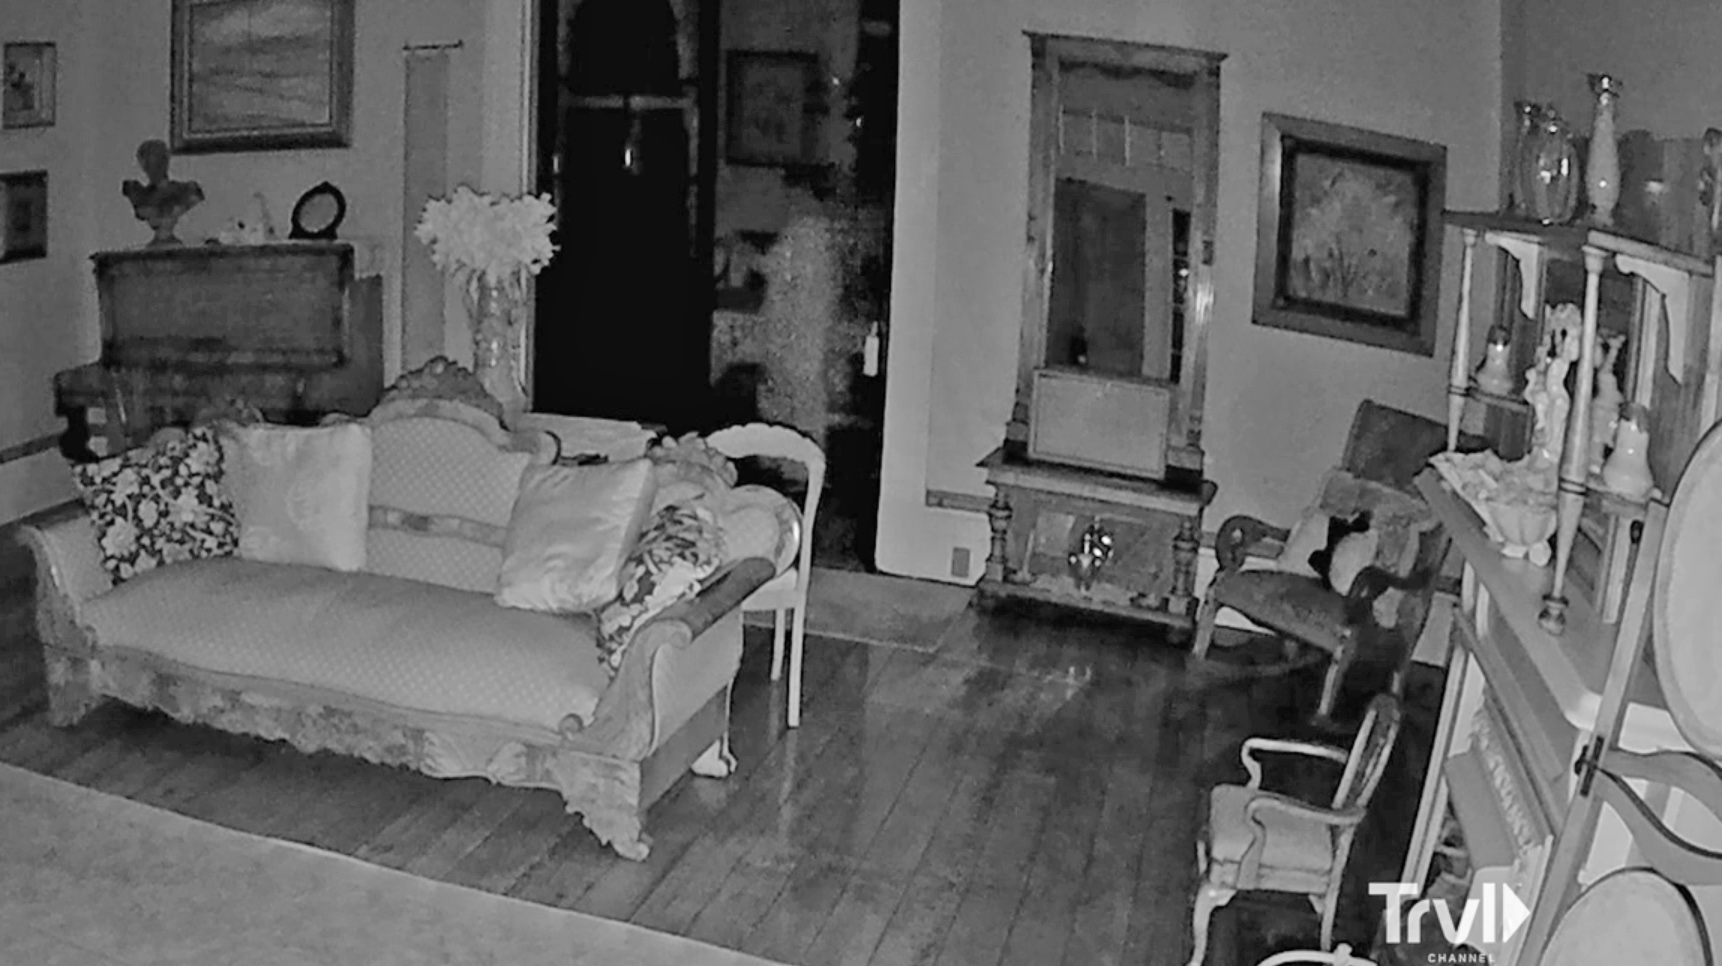 New Paranormal Show Claims They Caught an 'Apparition' on